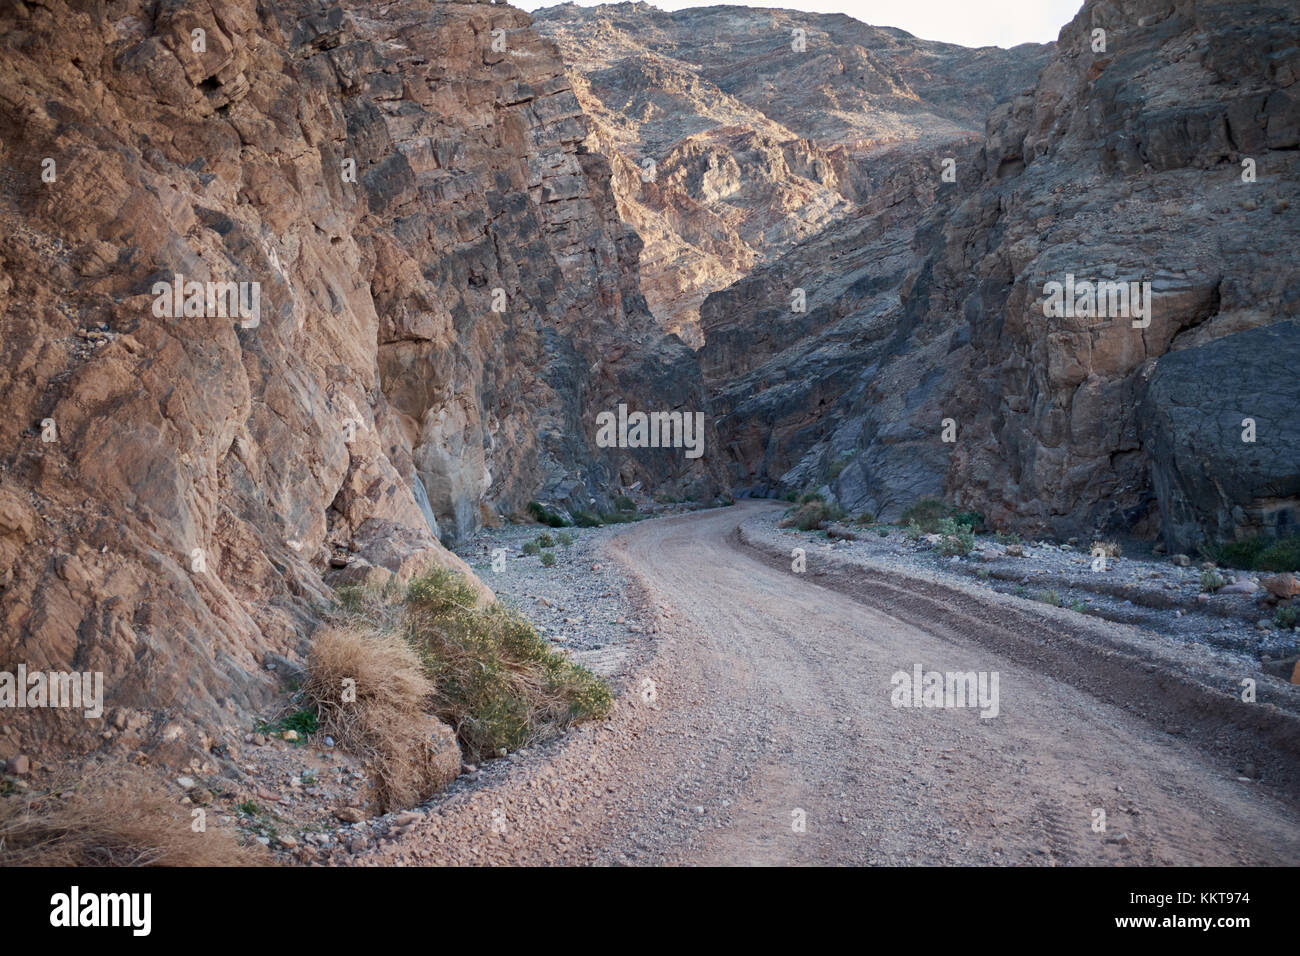 Winding road through a dry rugged rocky canyon in the Death valley National Park, Nevada, USA Stock Photo